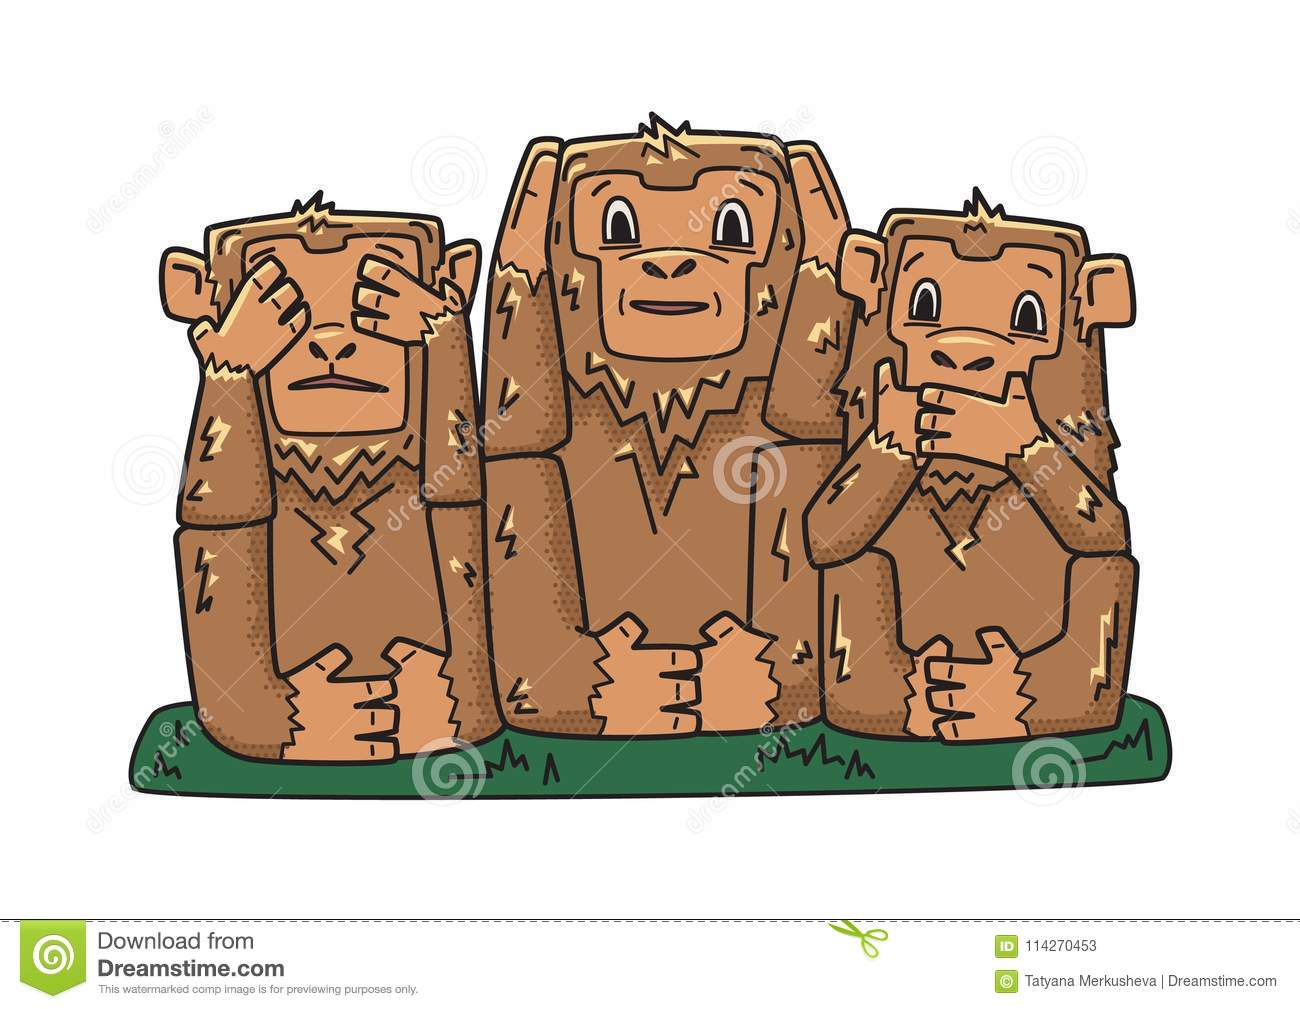 Three wise monkeys. mystic apes. See no evil, hear no evil, speak no evil. Vector character illustration, isolated on